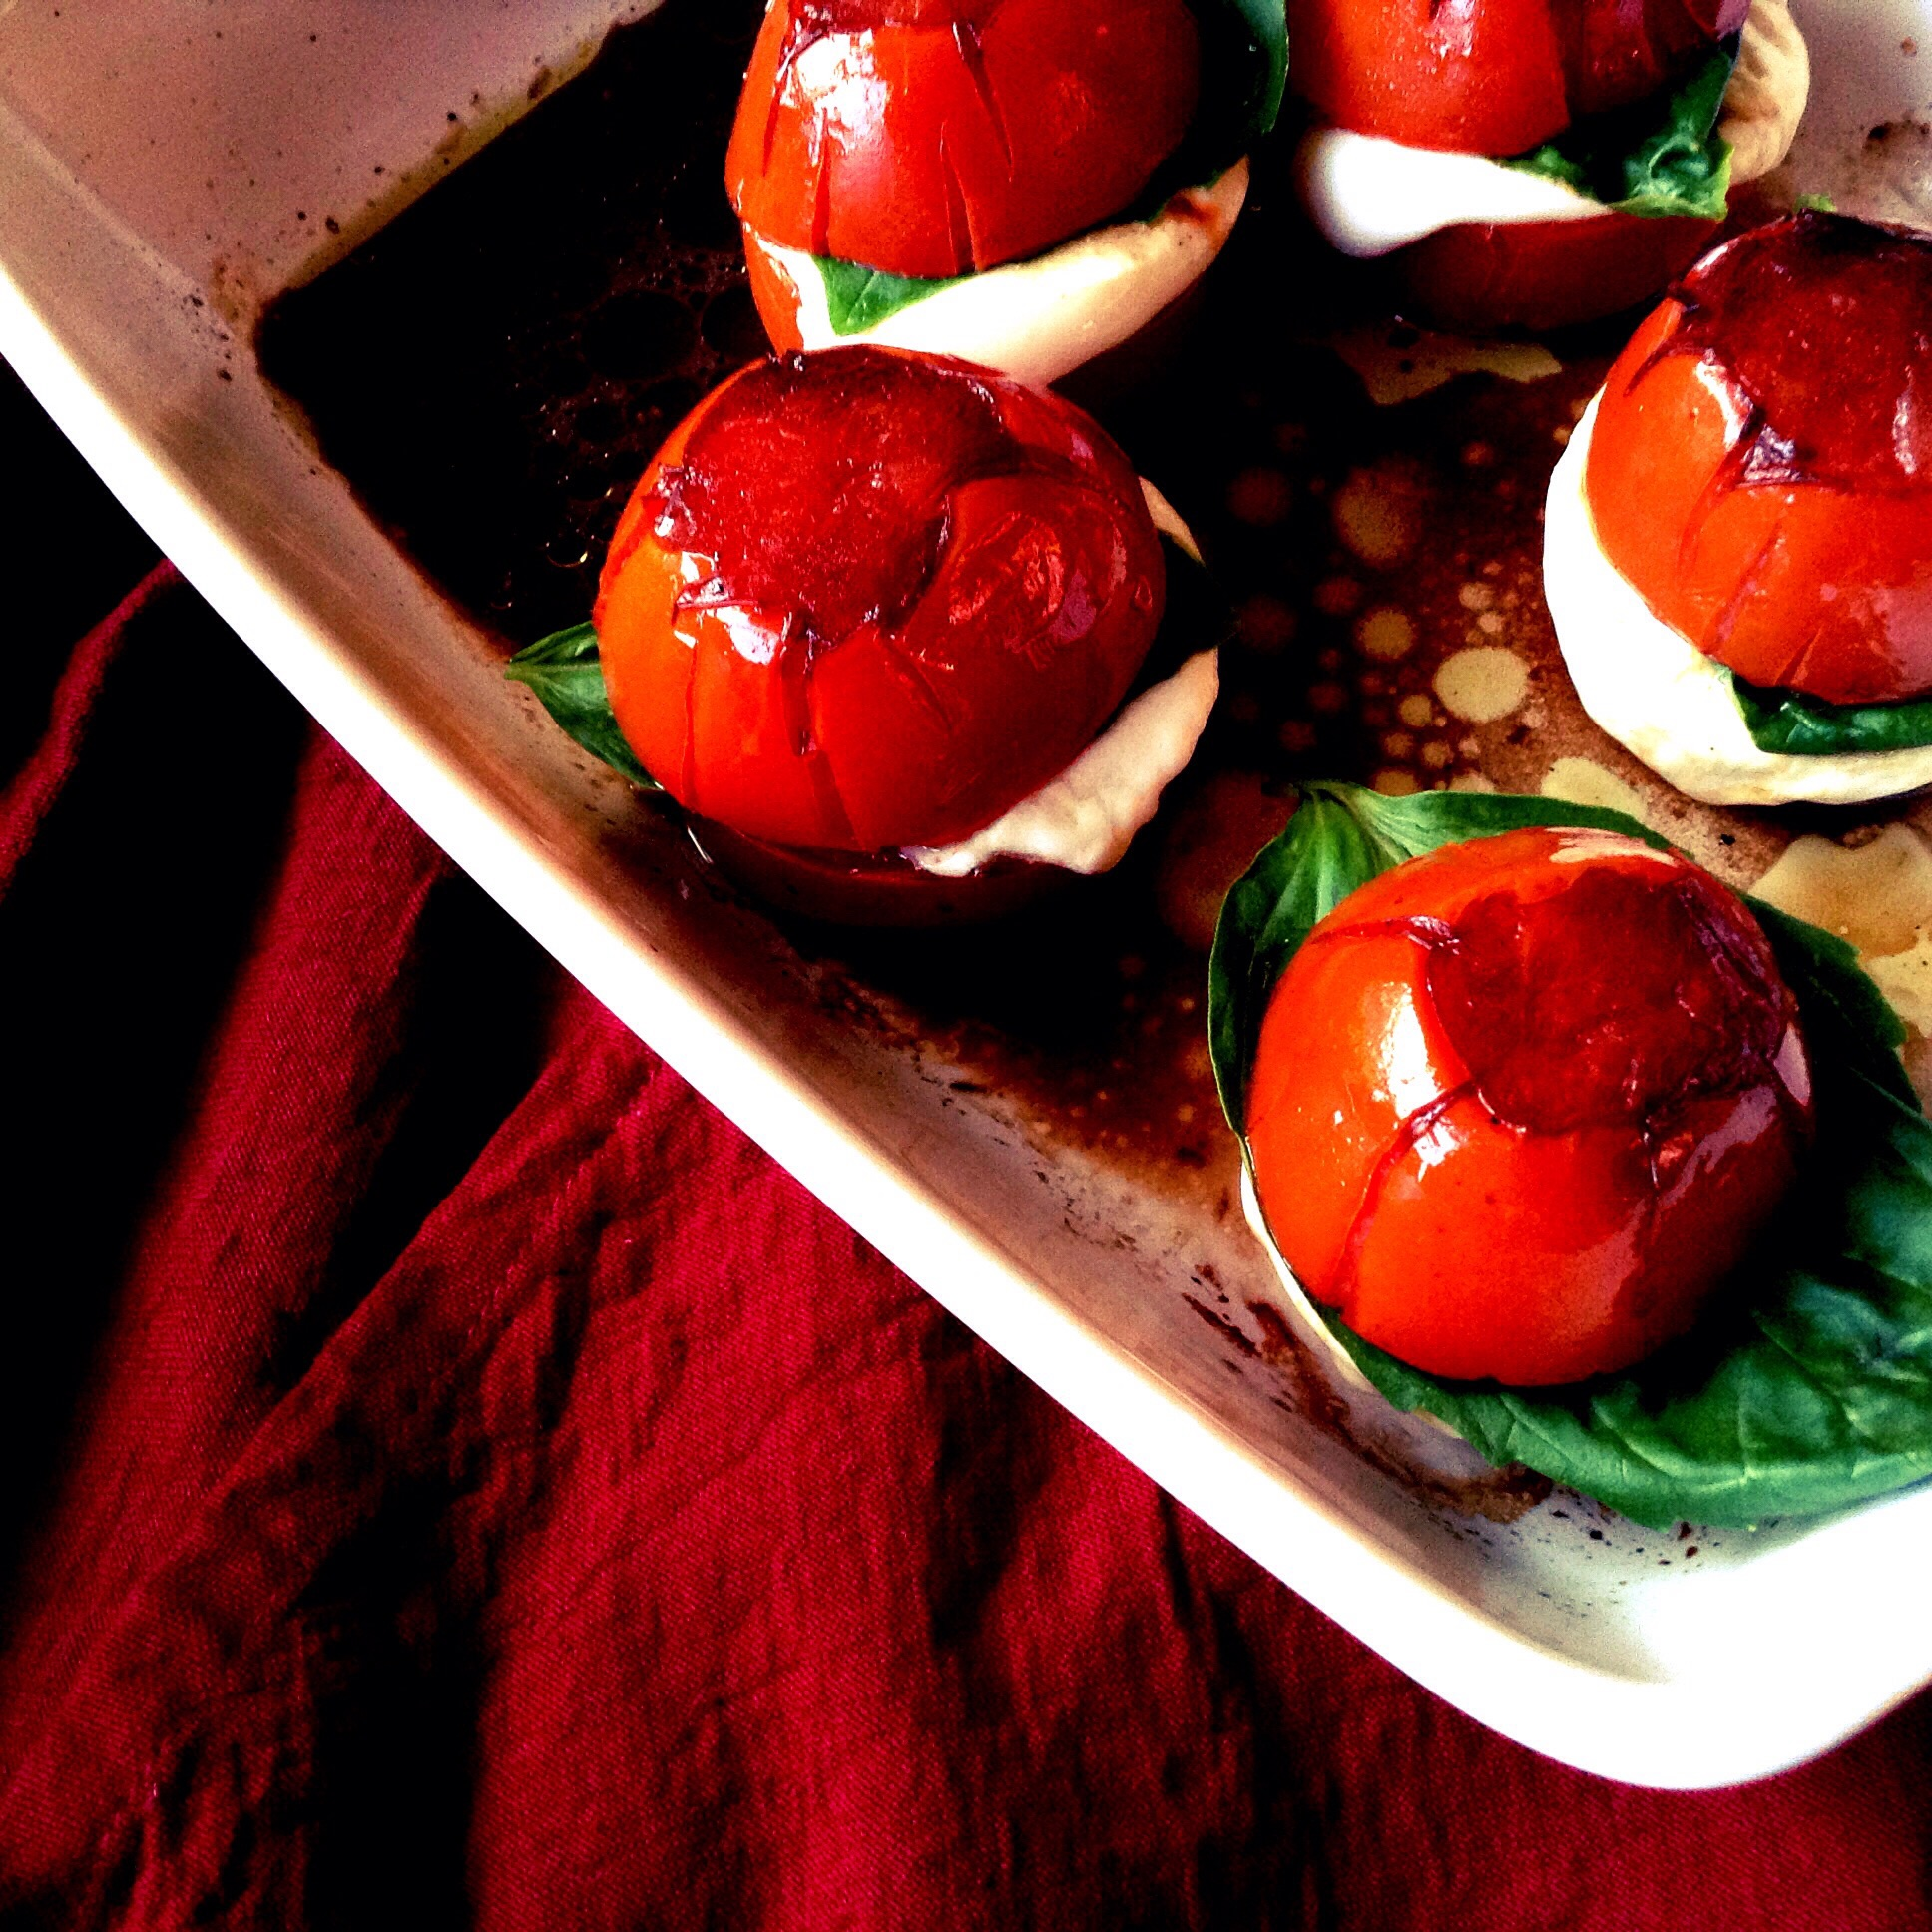 Warm Caprese Salad on www.thedanareneeway.com